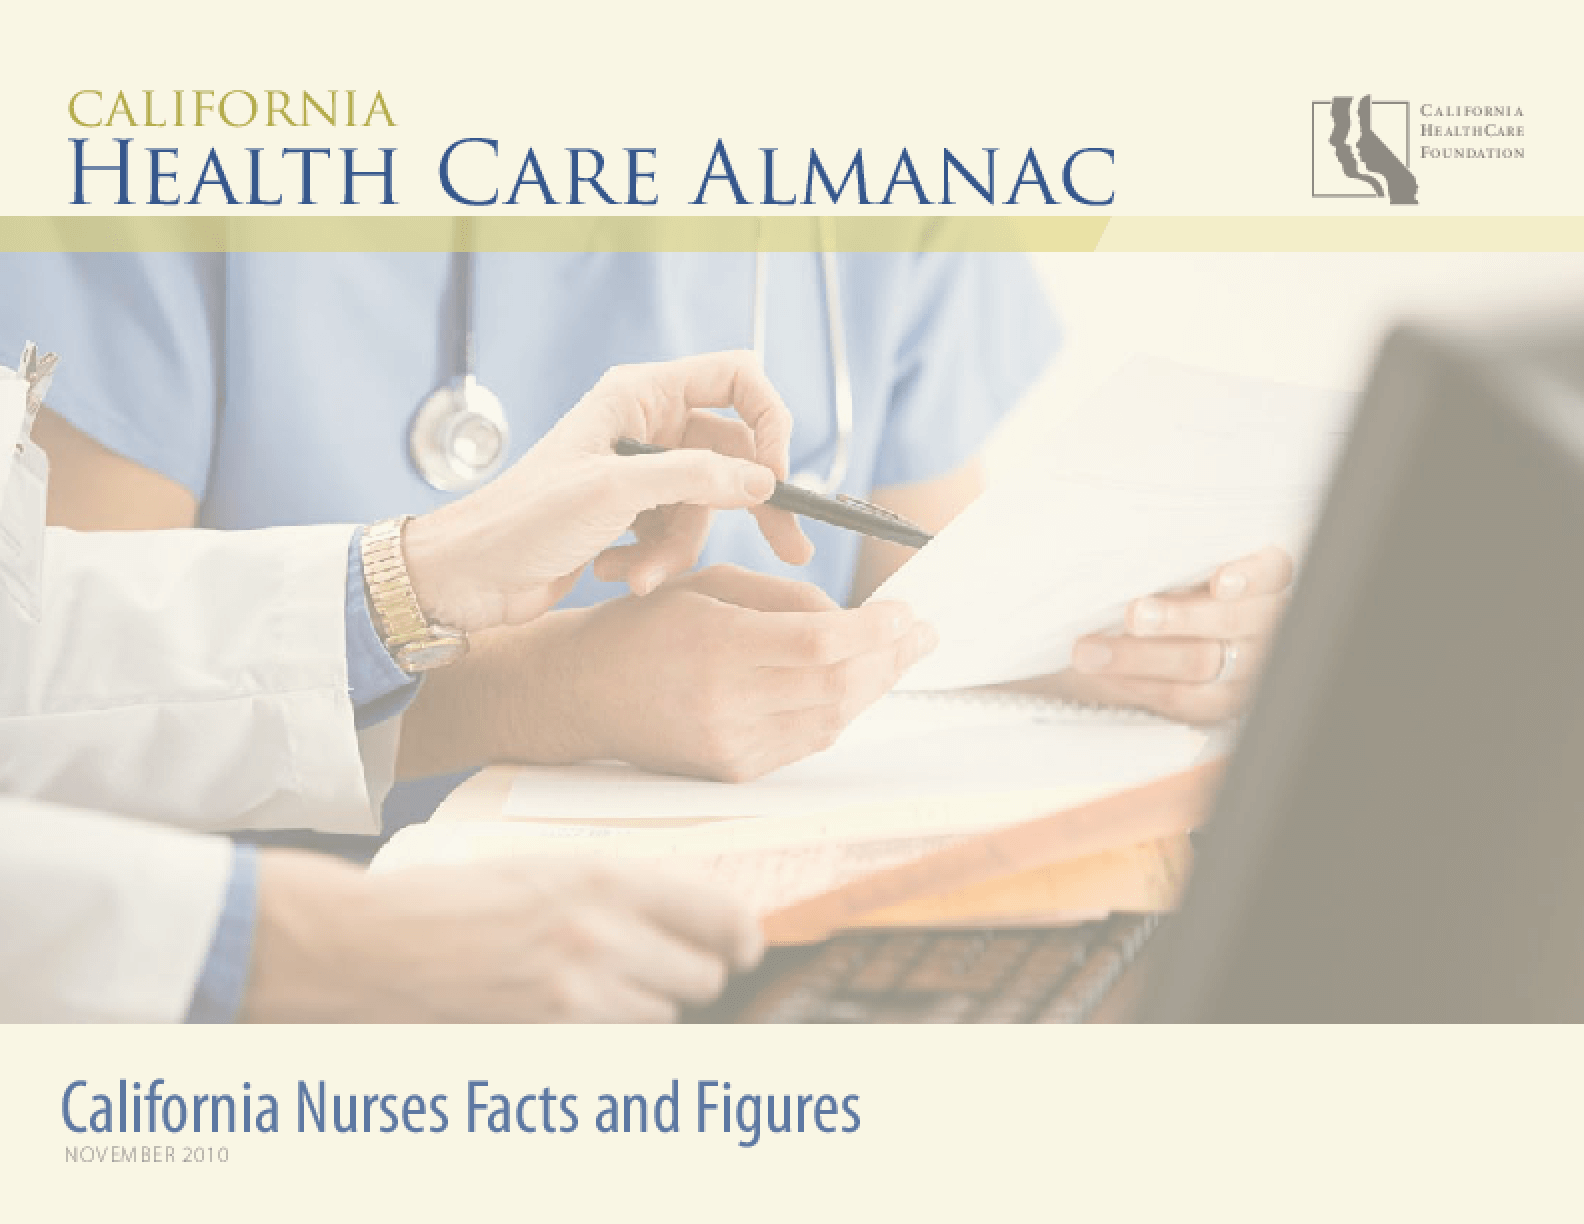 California Nurses Facts and Figures